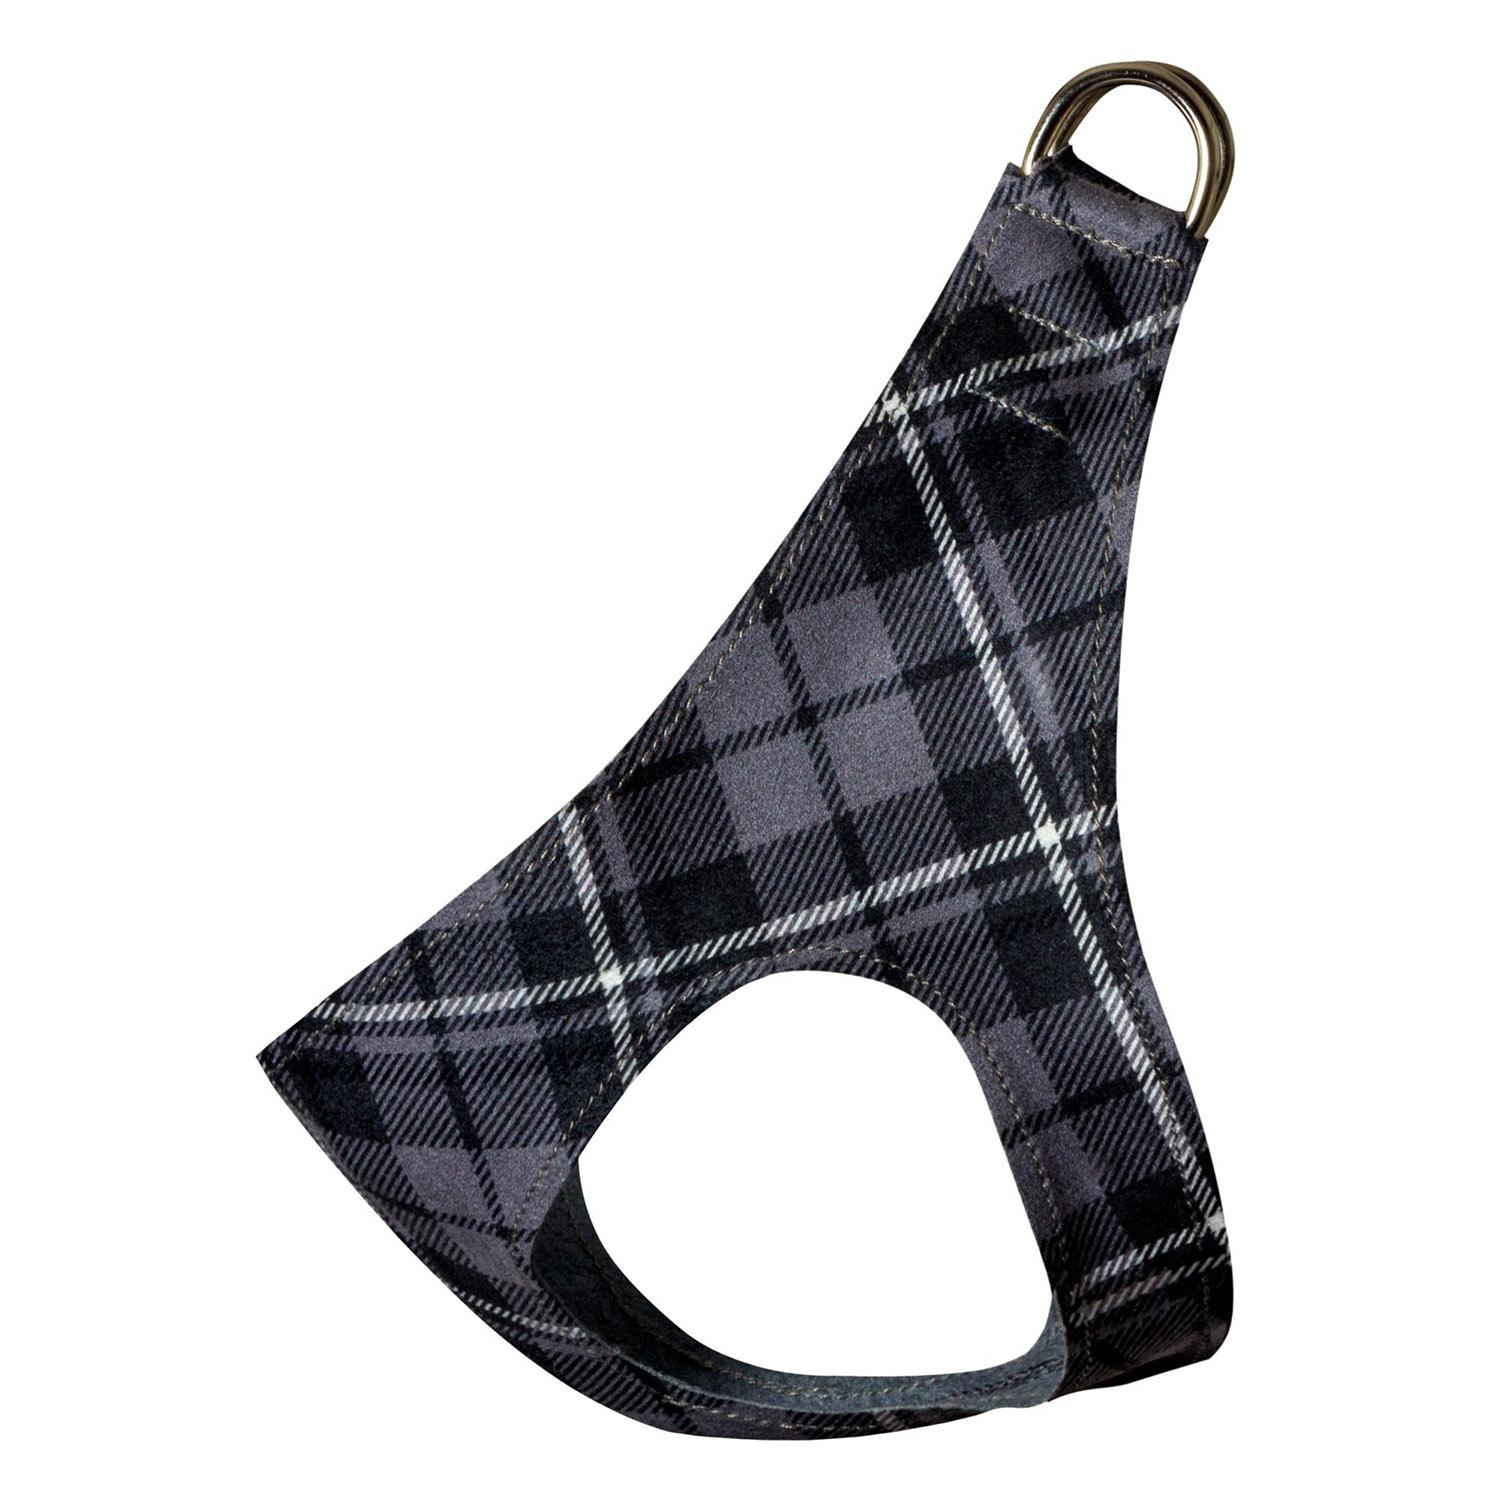 Scotty Step-In Dog Harness by Susan Lanci - Charcoal Plaid